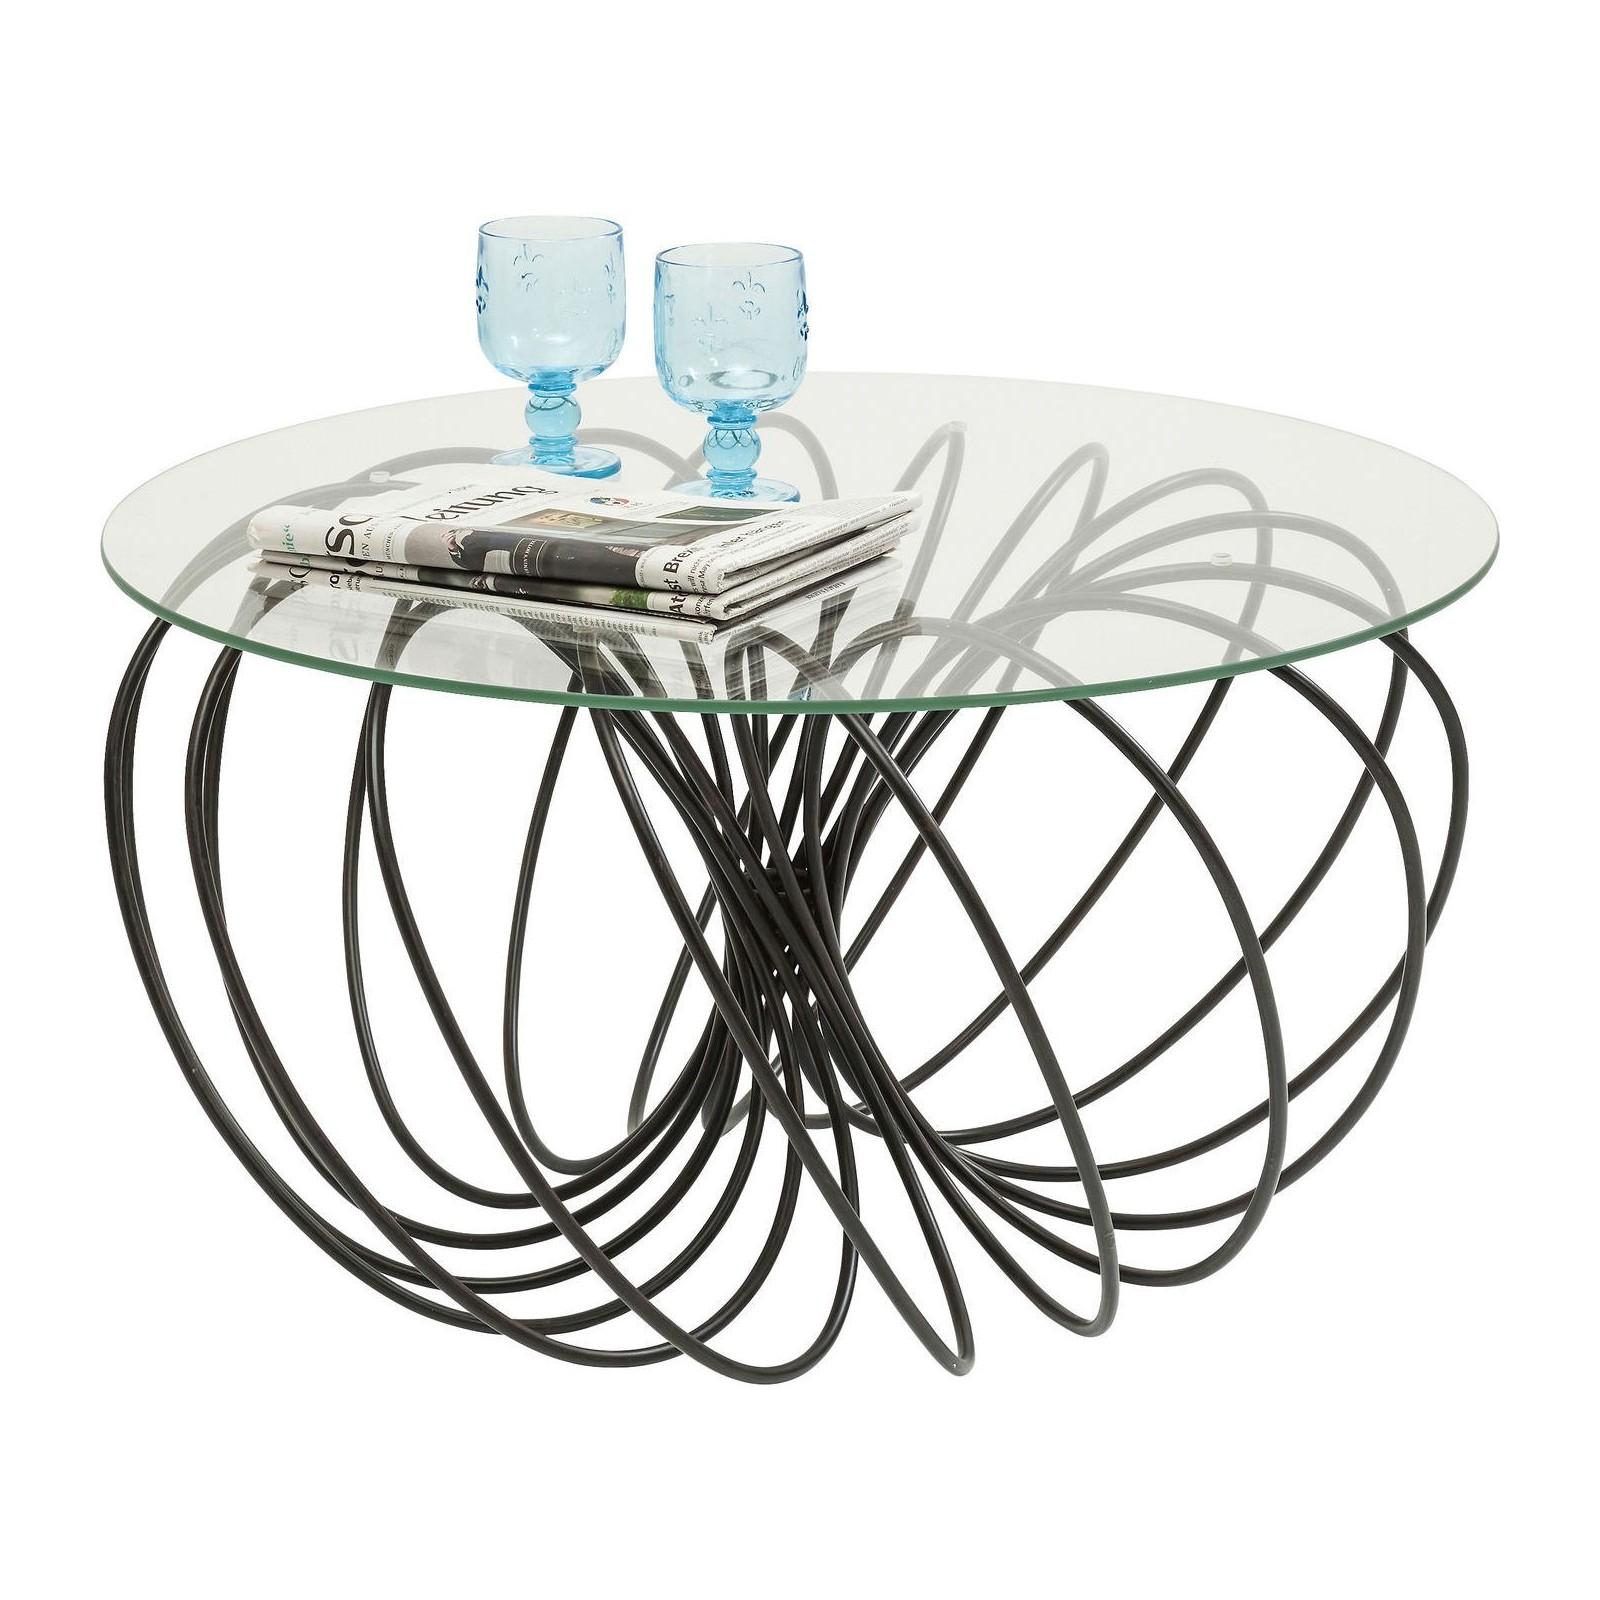 Table basse contemporaine noire wire kare design for Table basse design 80 cm